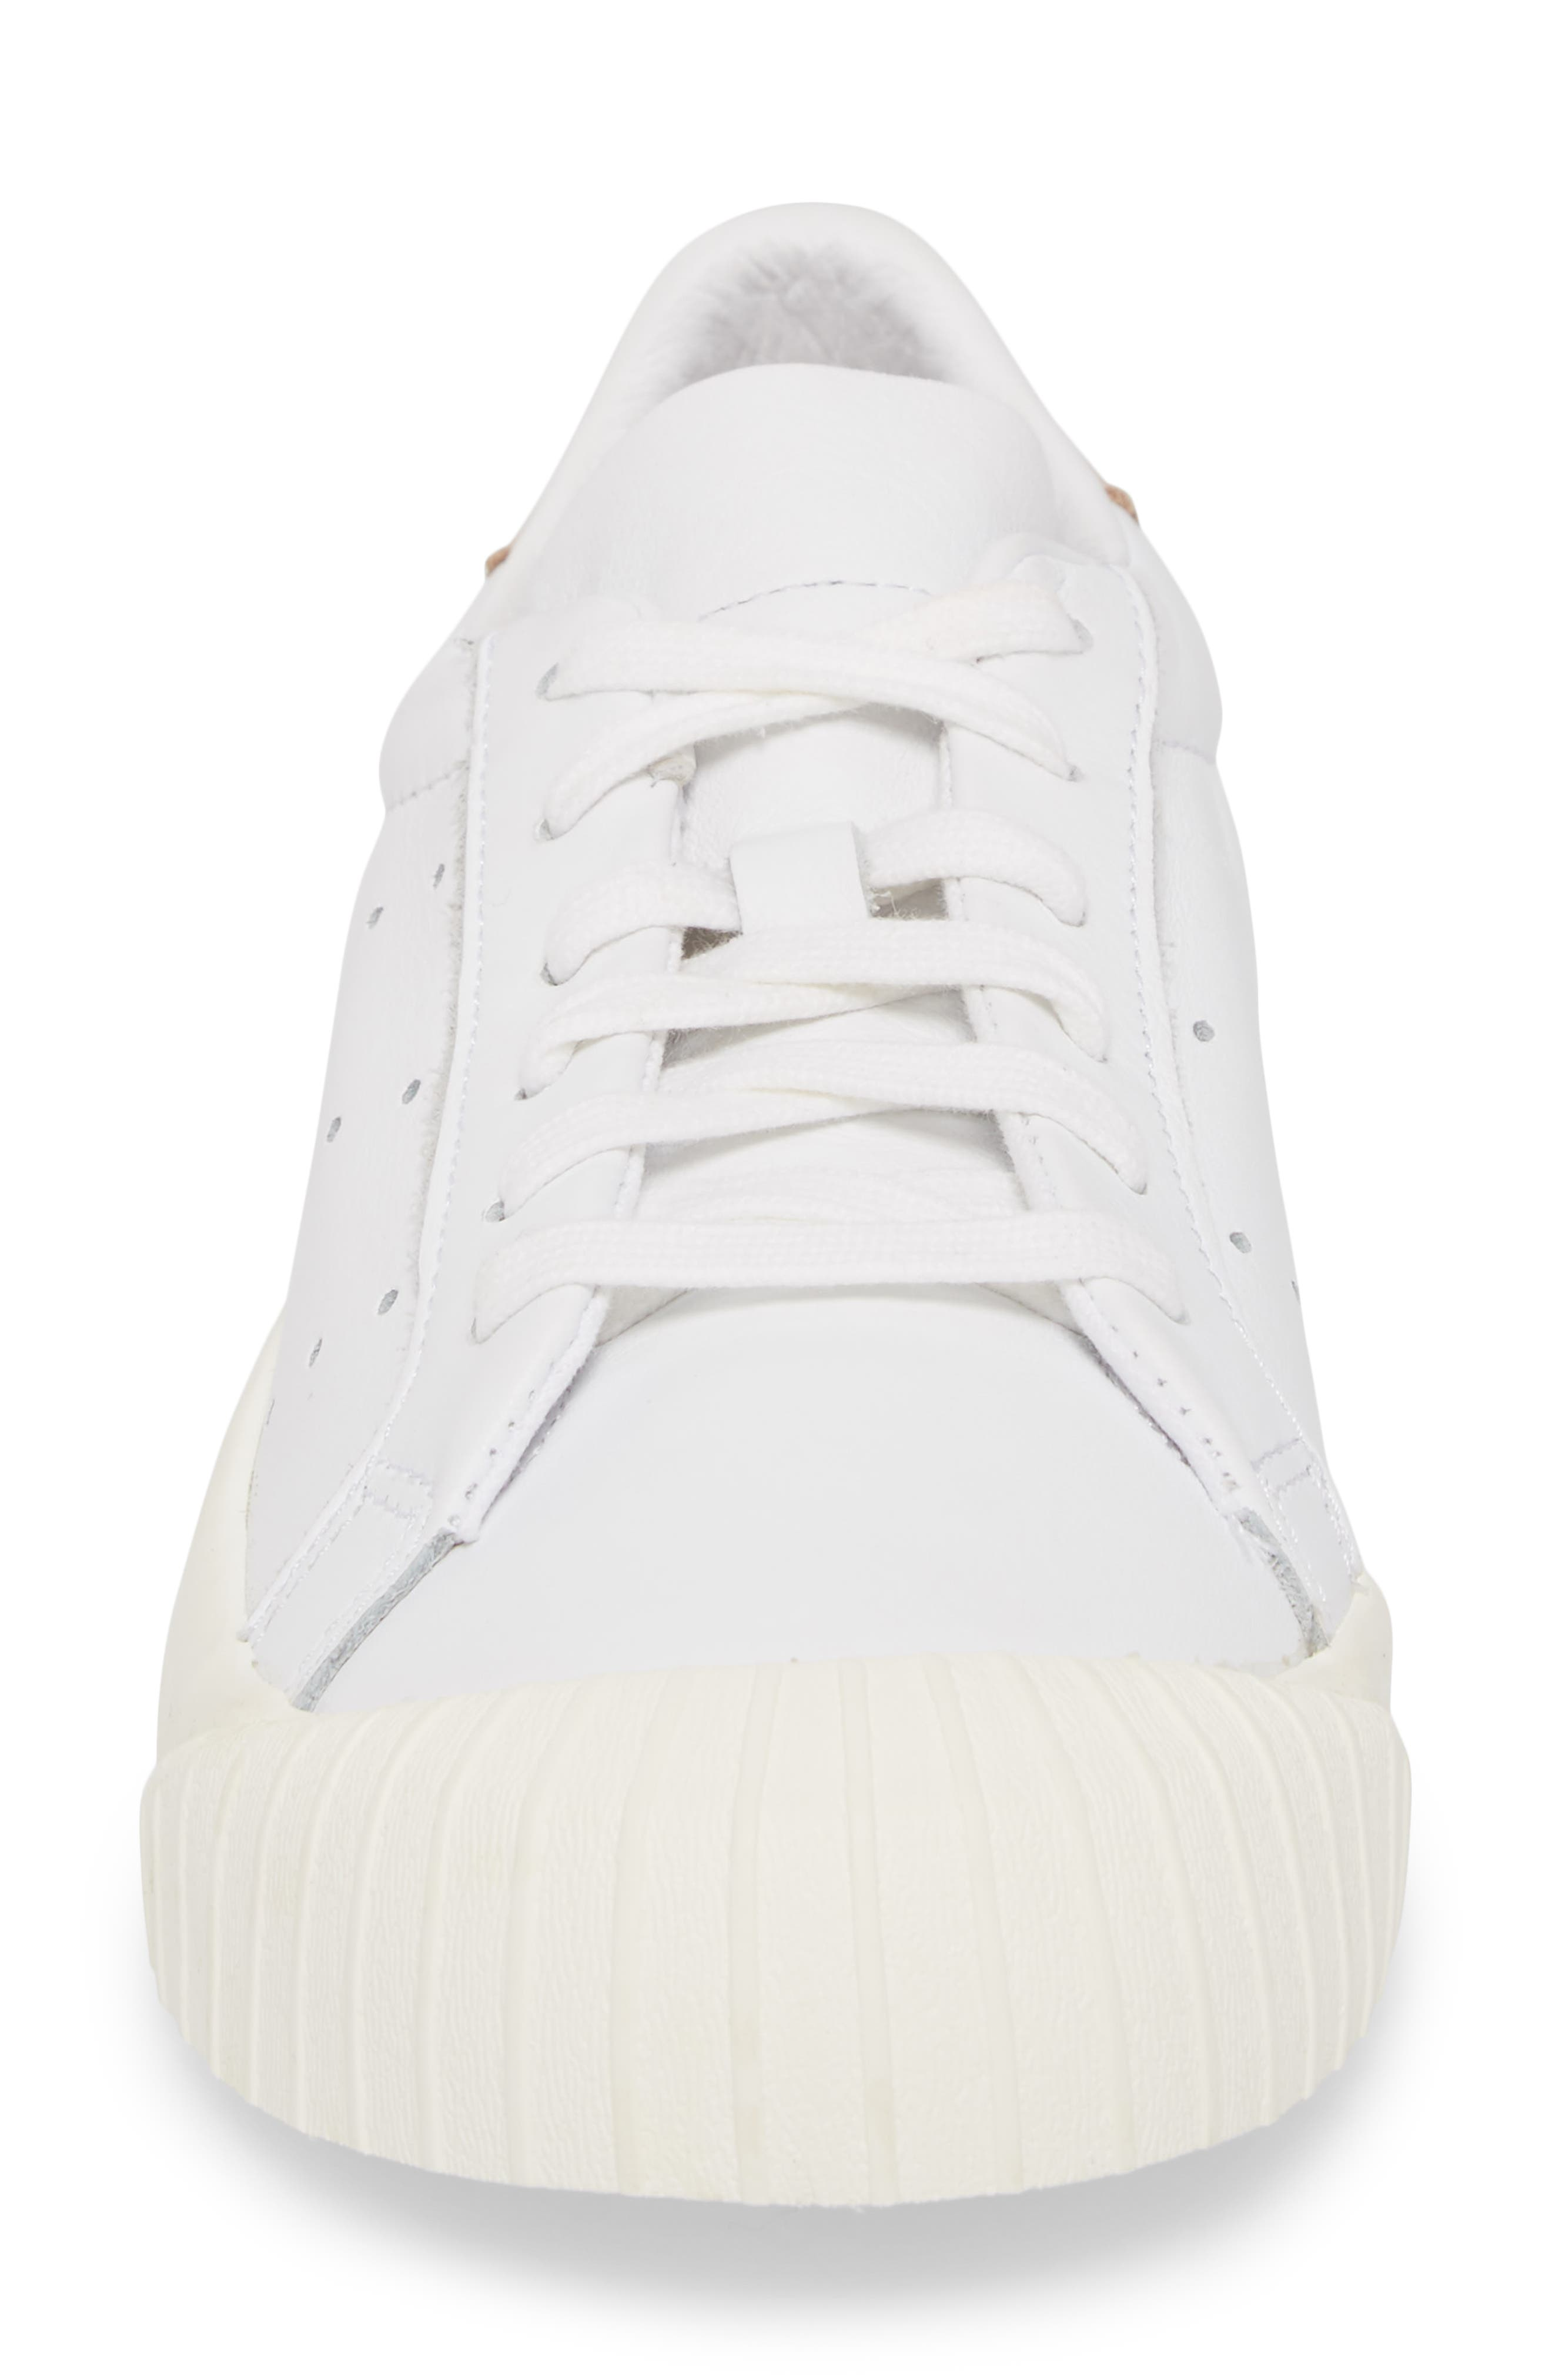 Everyn Perforated Low Top Sneaker,                             Alternate thumbnail 8, color,